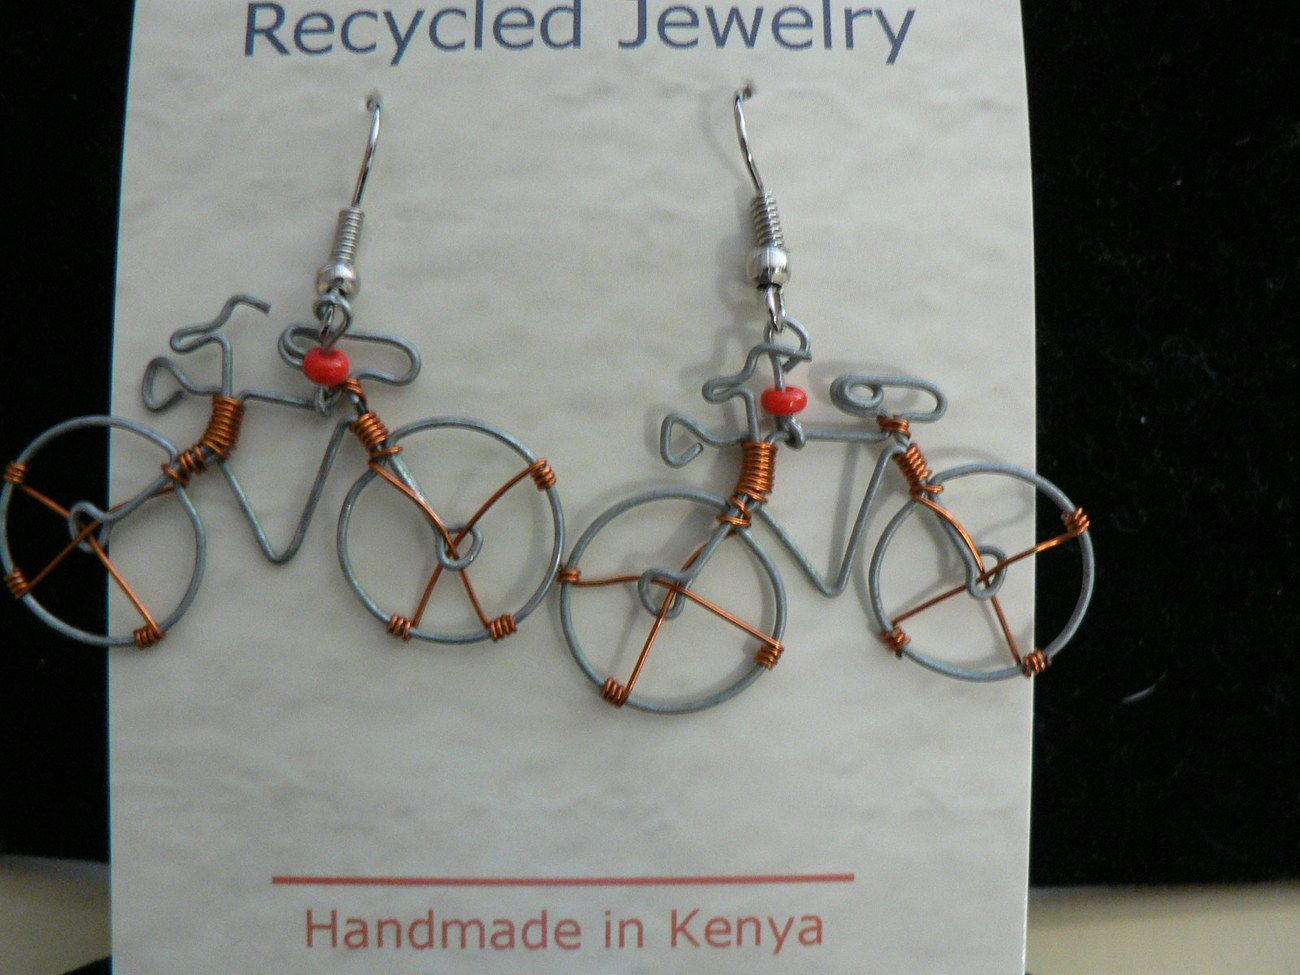 Quirky fair trade made in Kenya wire bicycle earrings - in desertladybug 's Bonanza booth.  Too cute!